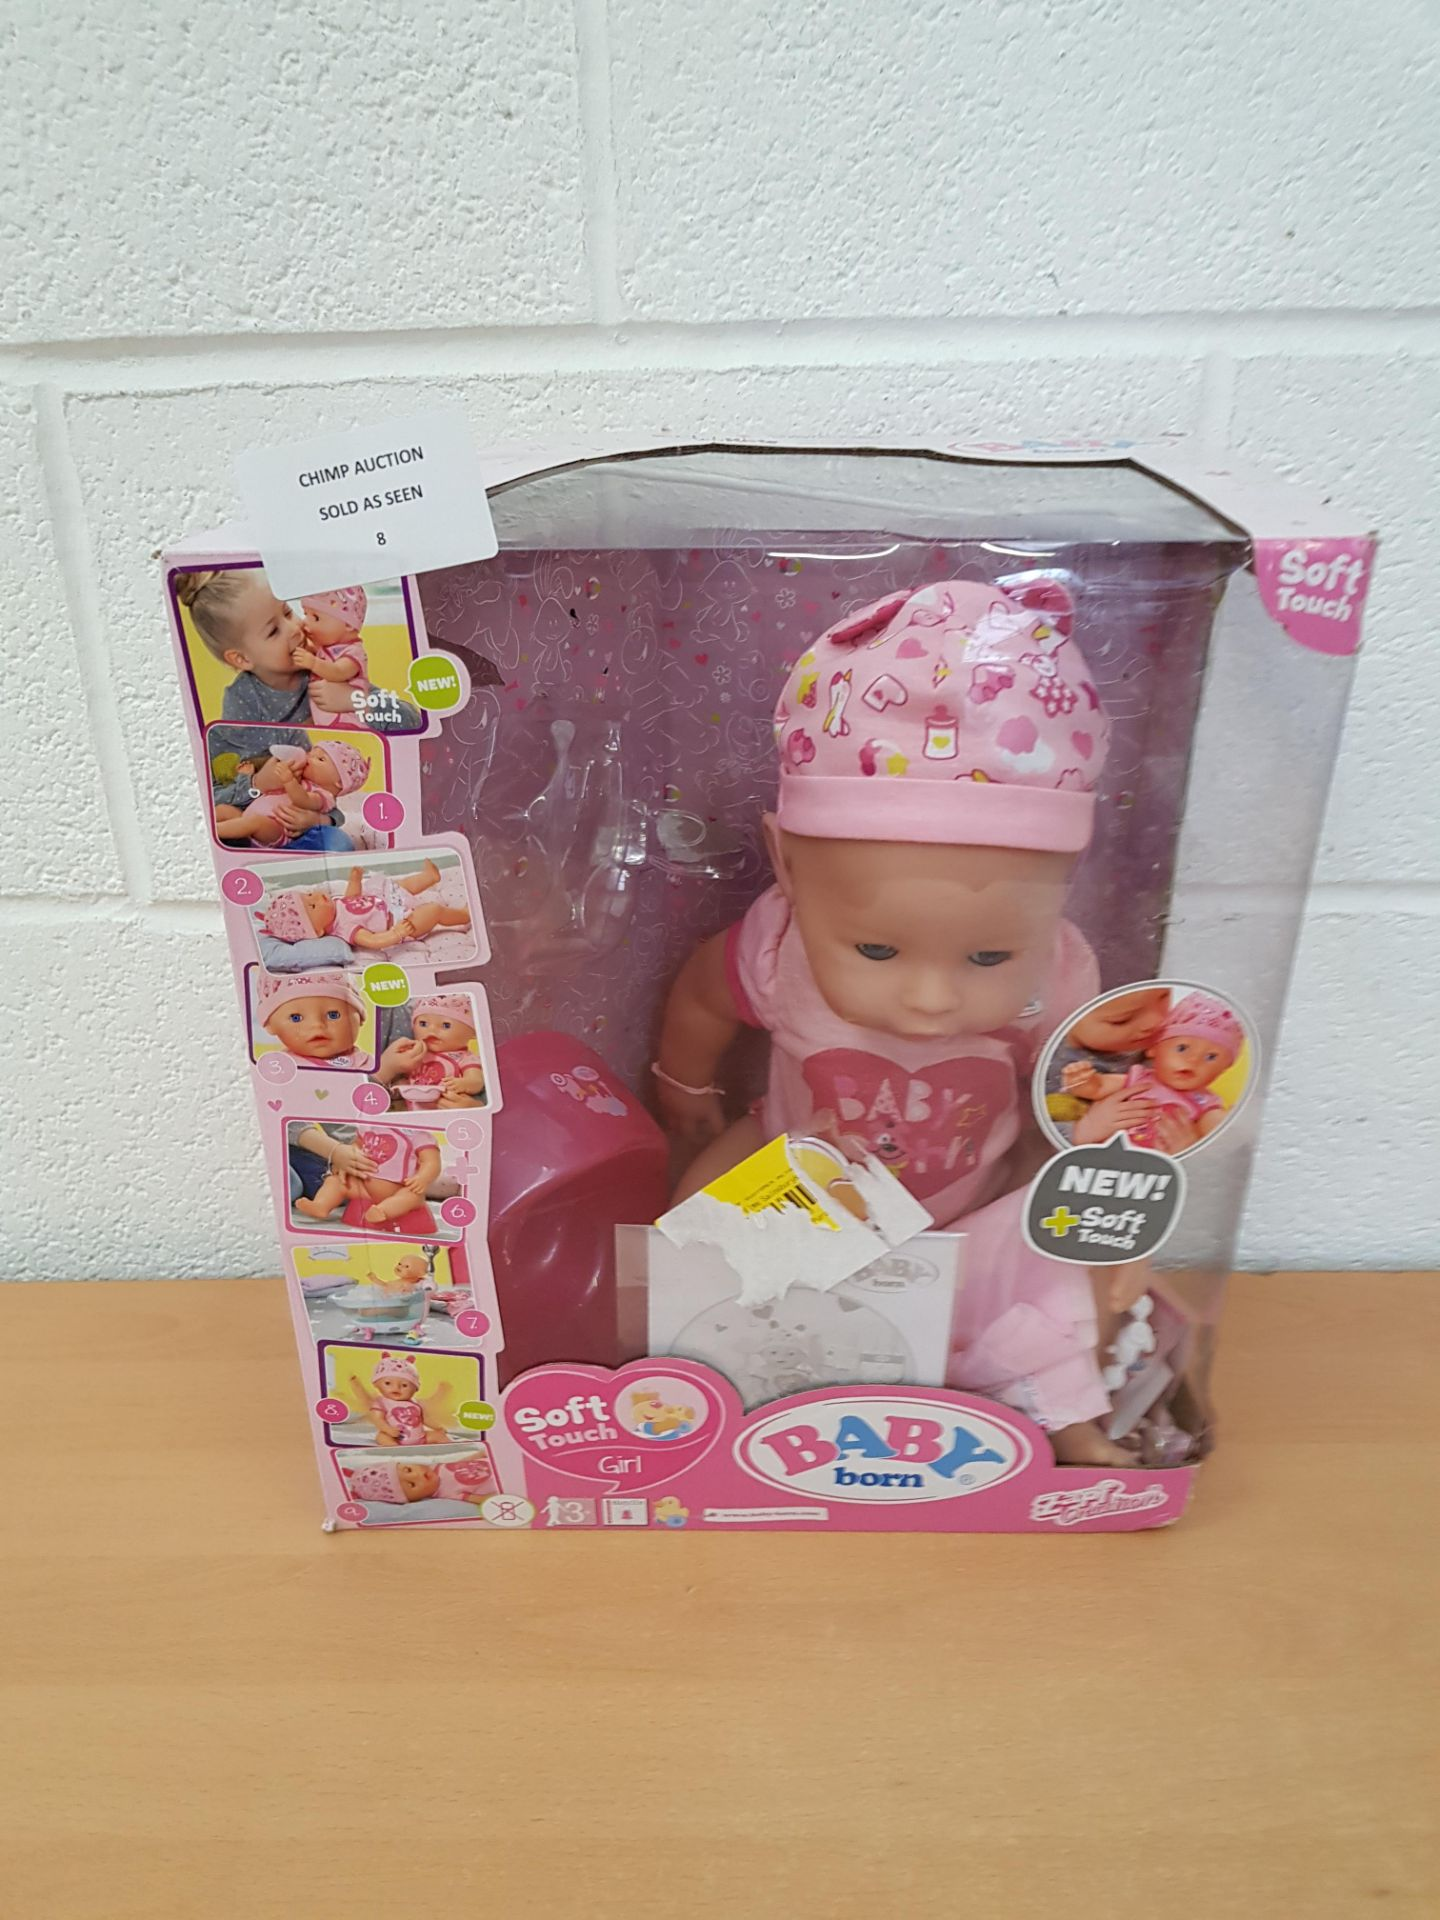 Lot 8 - Baby Born Doll interactive playset